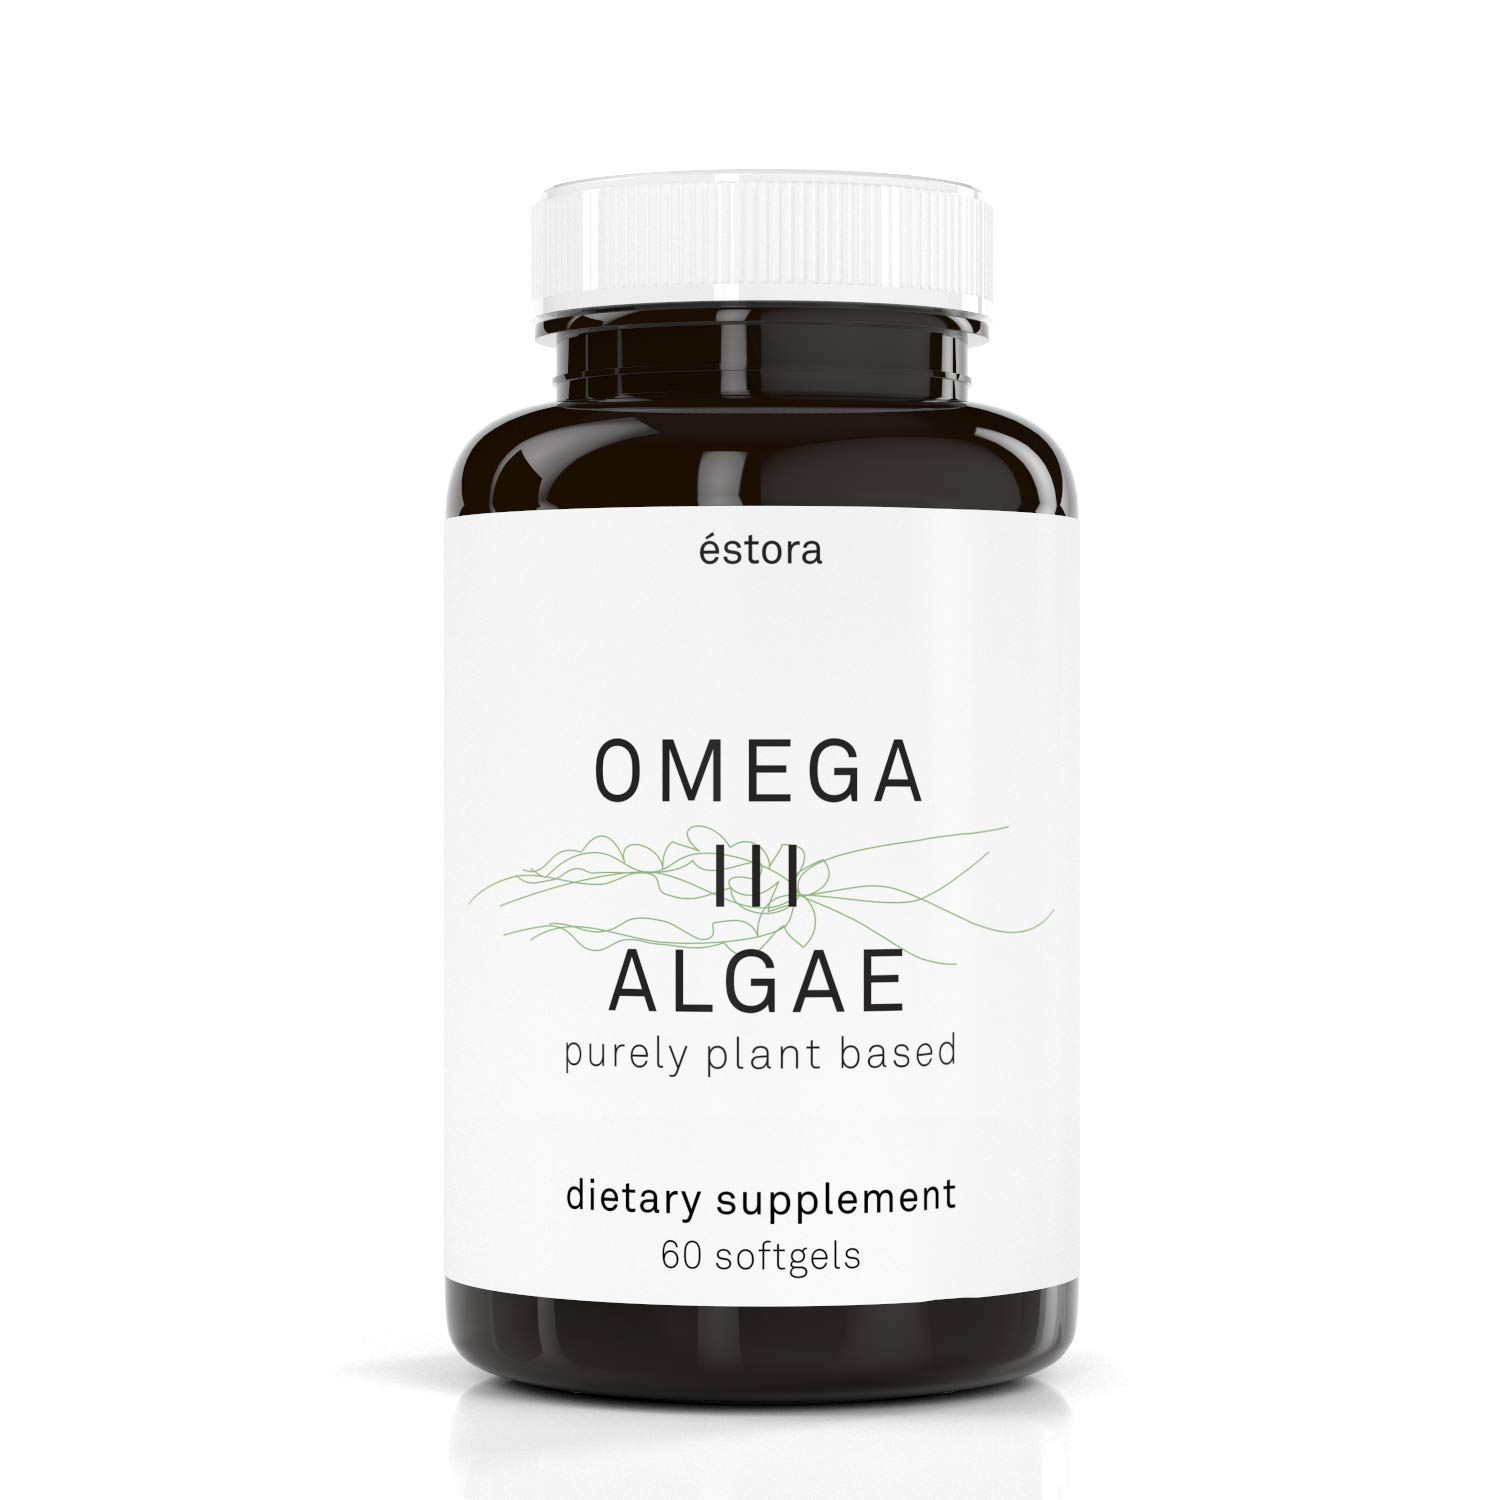 ESTORA Omega 3 DHA Algae Vegan Microalgae Algal Oil Supplement (60 Soft Gel Capsules)